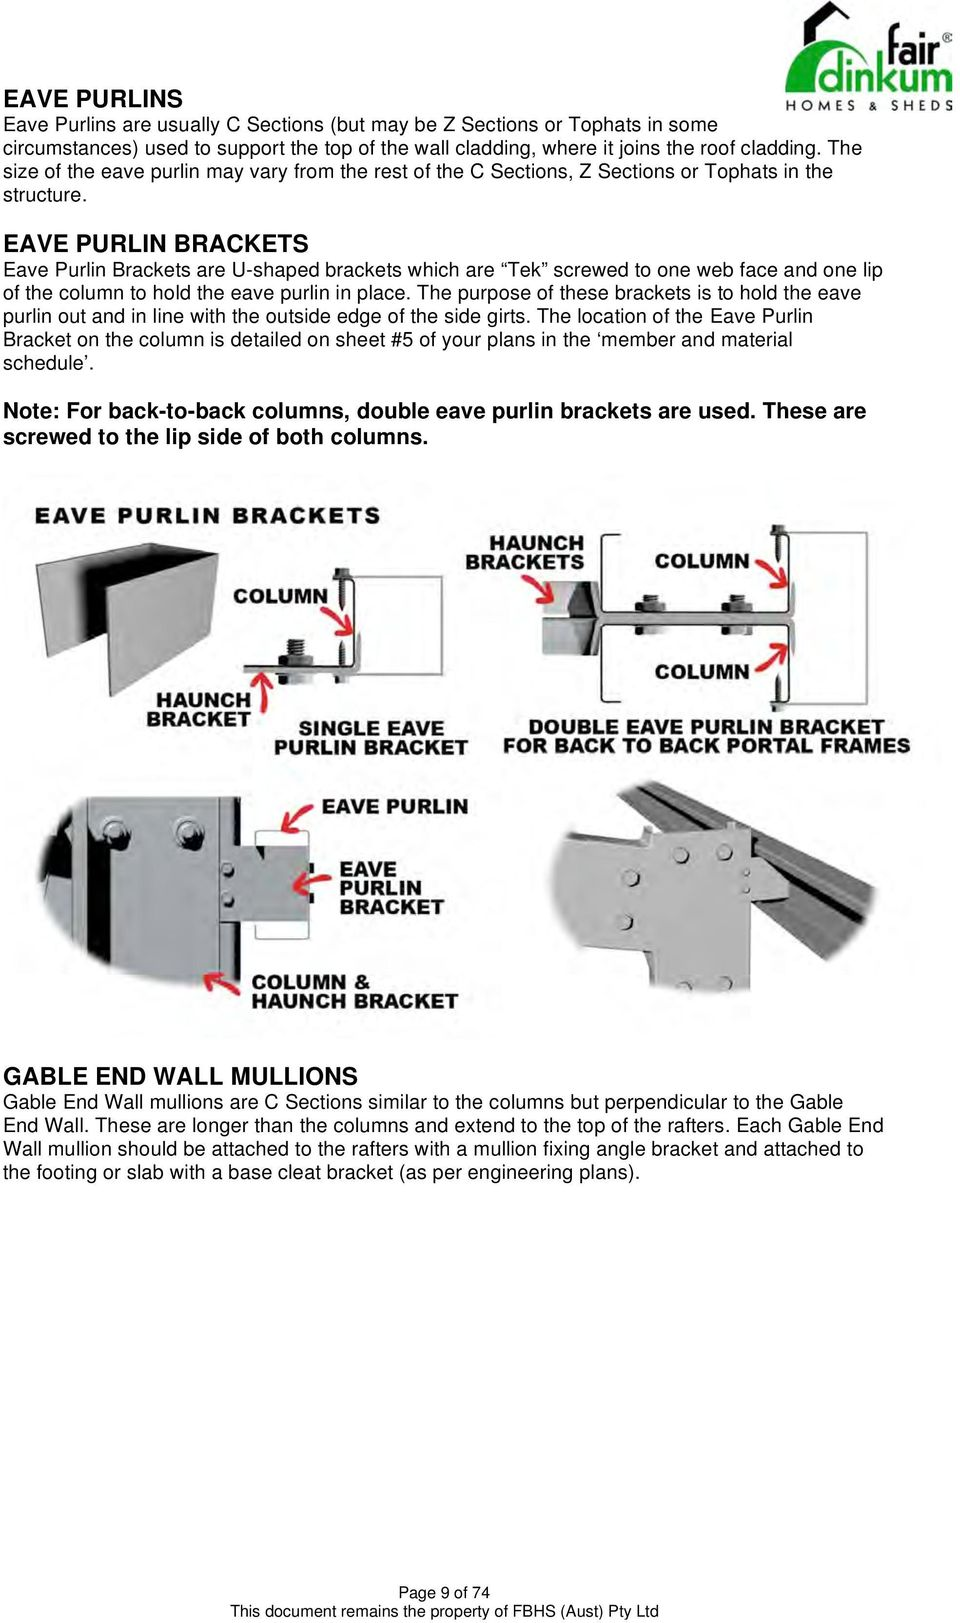 STEEL BUILDINGS RECOMMENDED INSTALLATION GUIDE - PDF